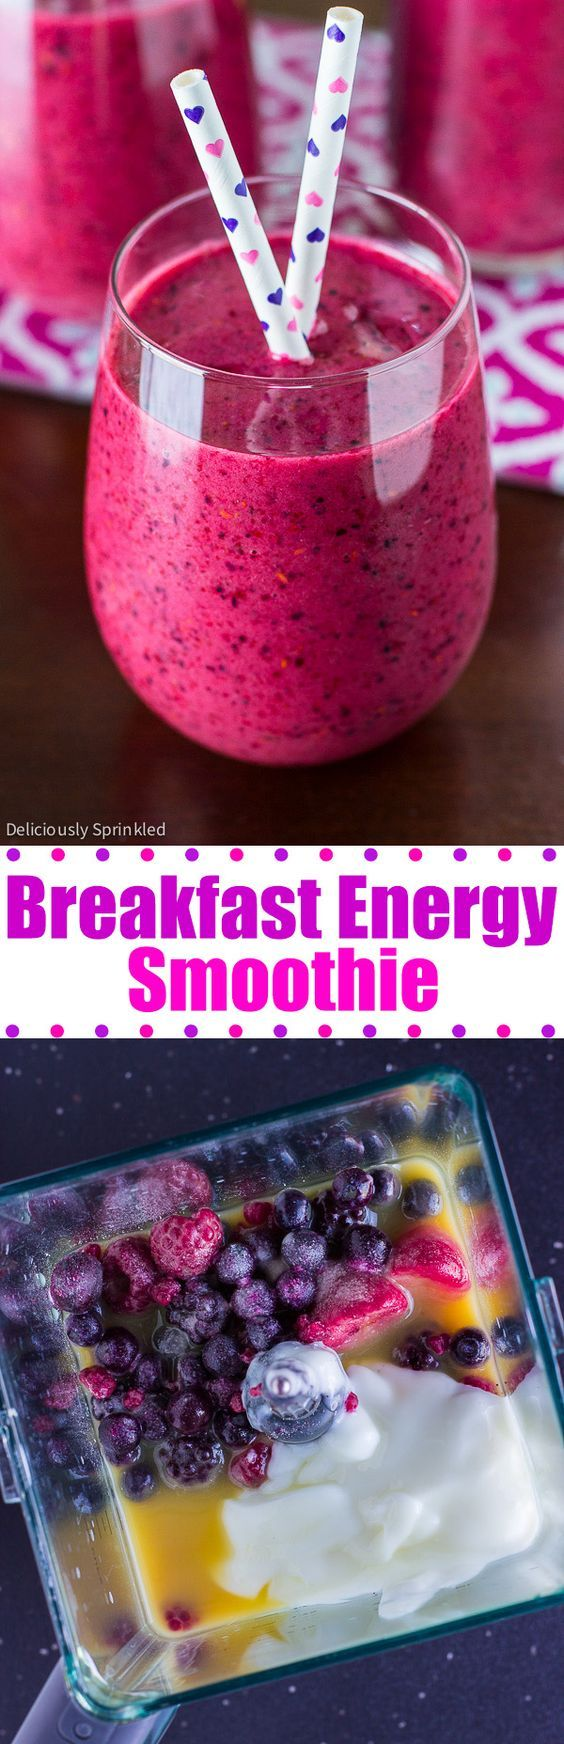 DIY Breakfast Energy Smoothie (Serves 2)